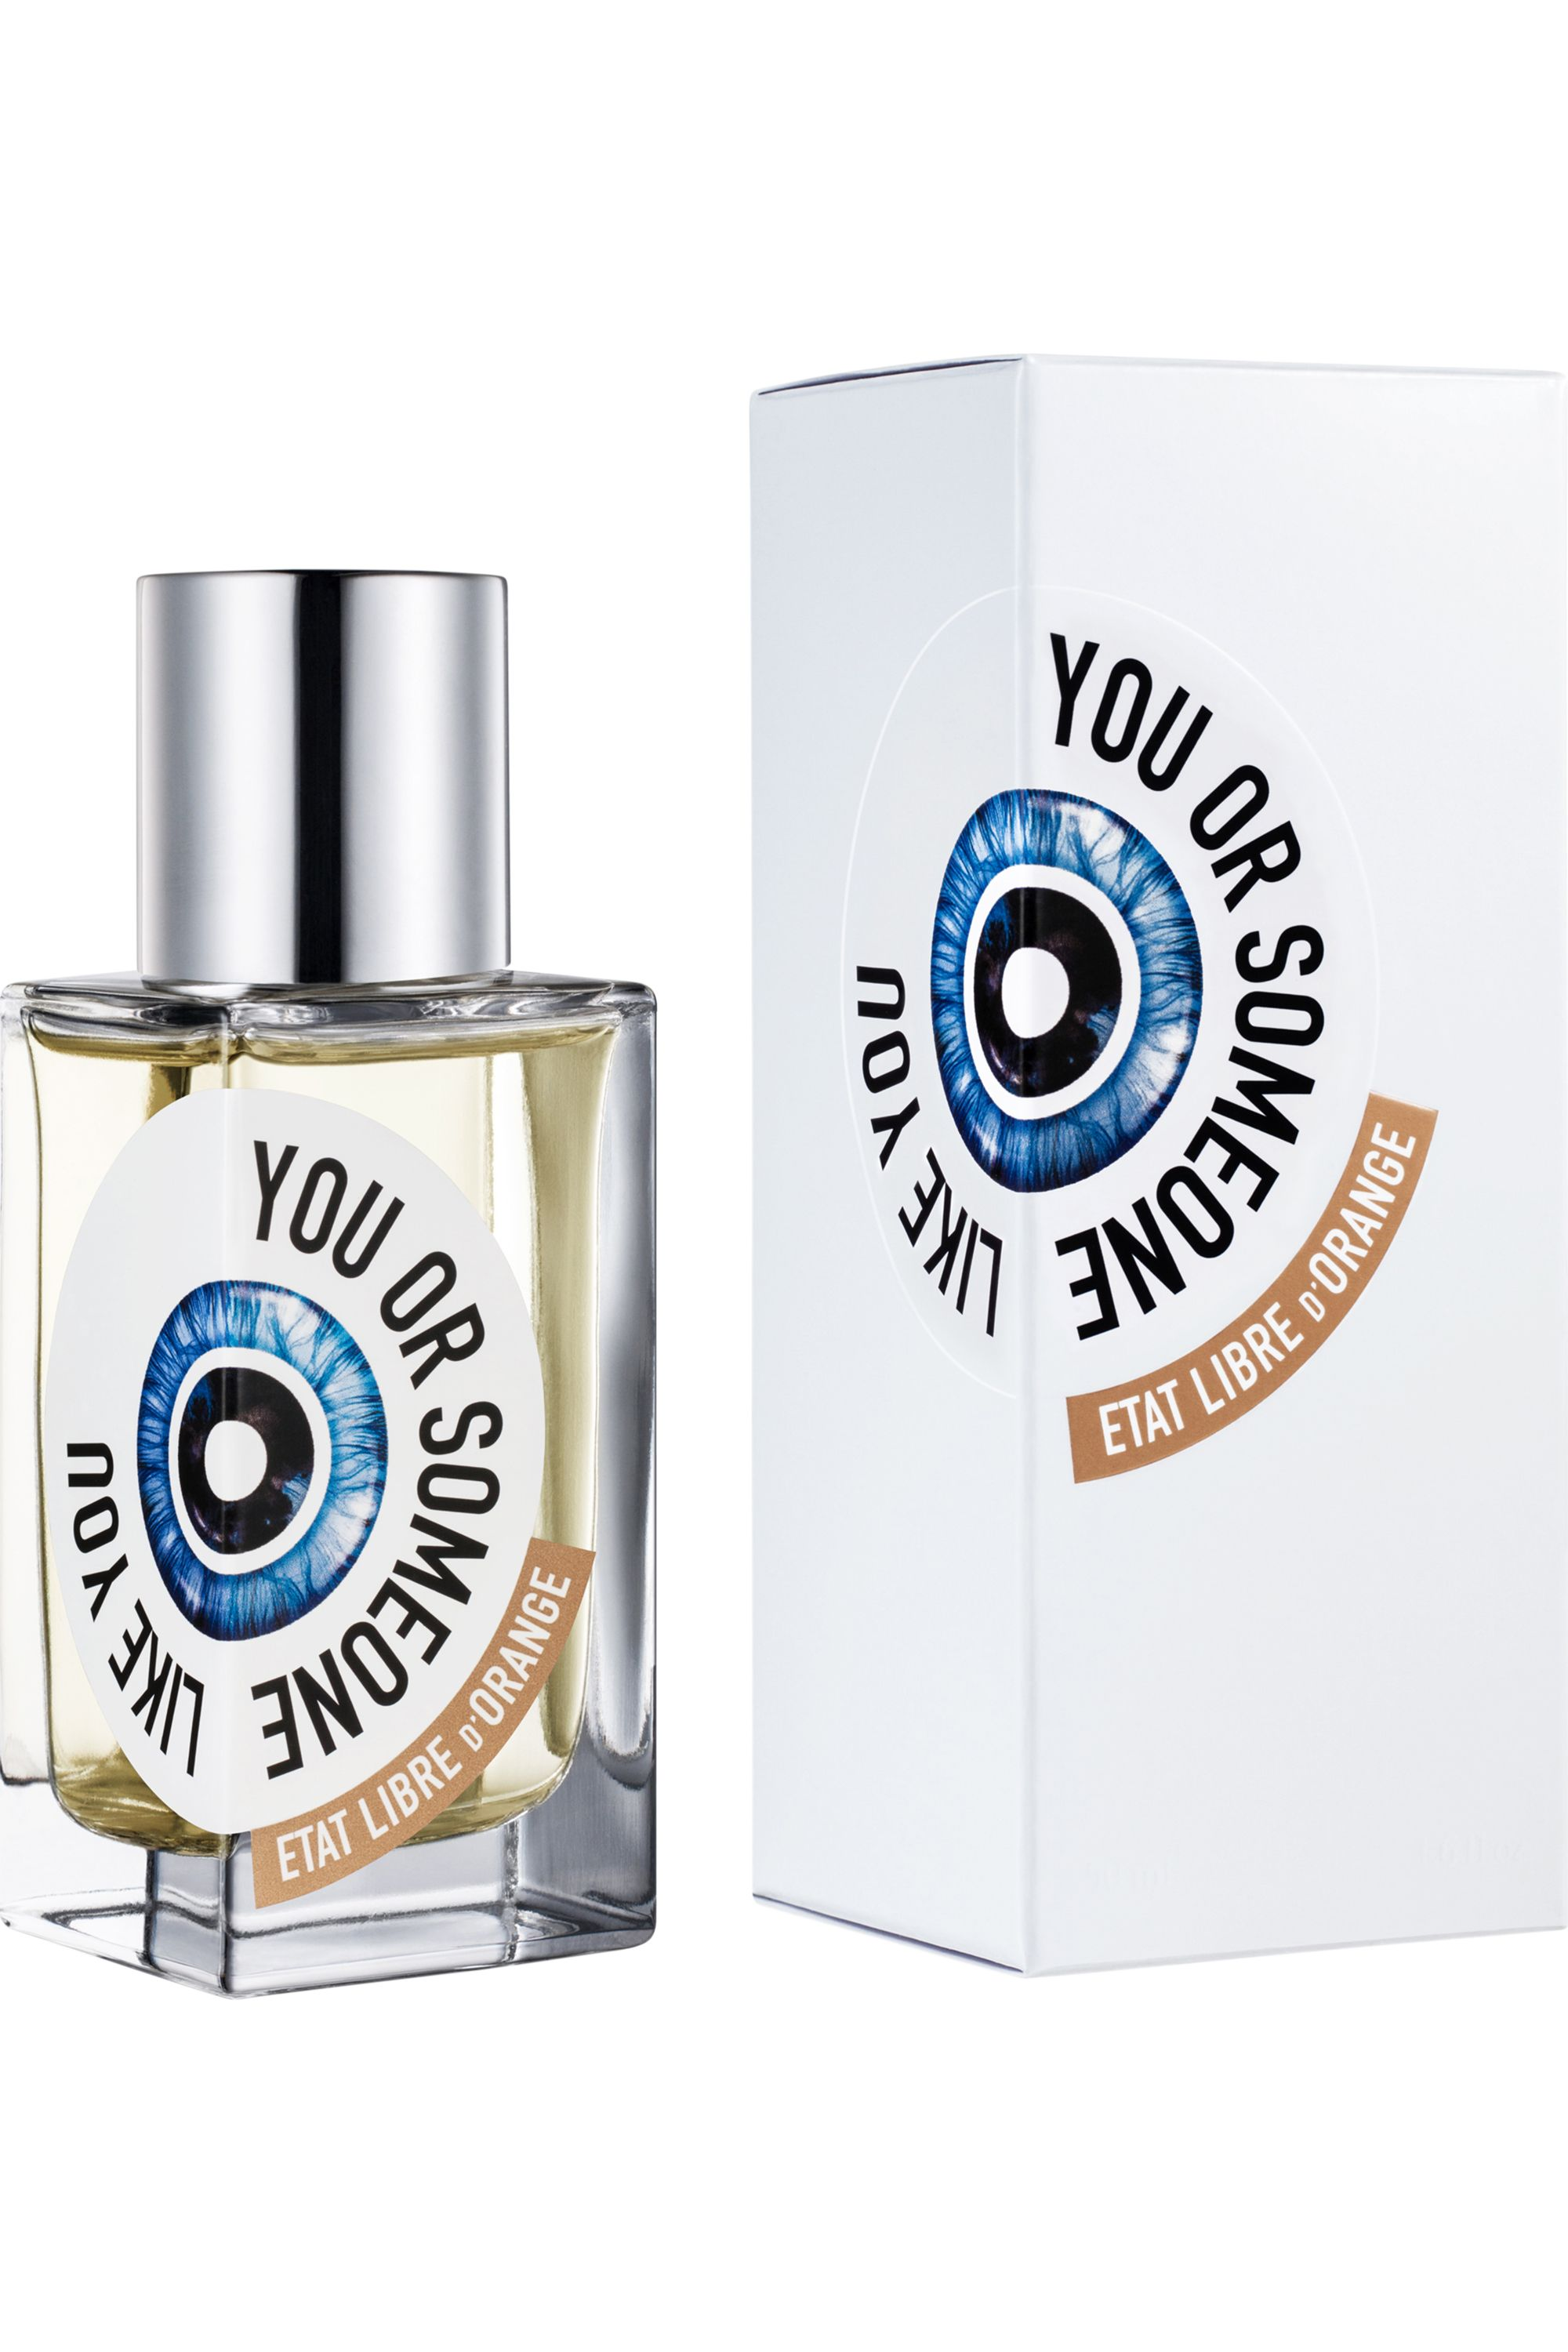 Blissim : Etat Libre d'Orange - You Or Someone Like You - You Or Someone Like You 50ml